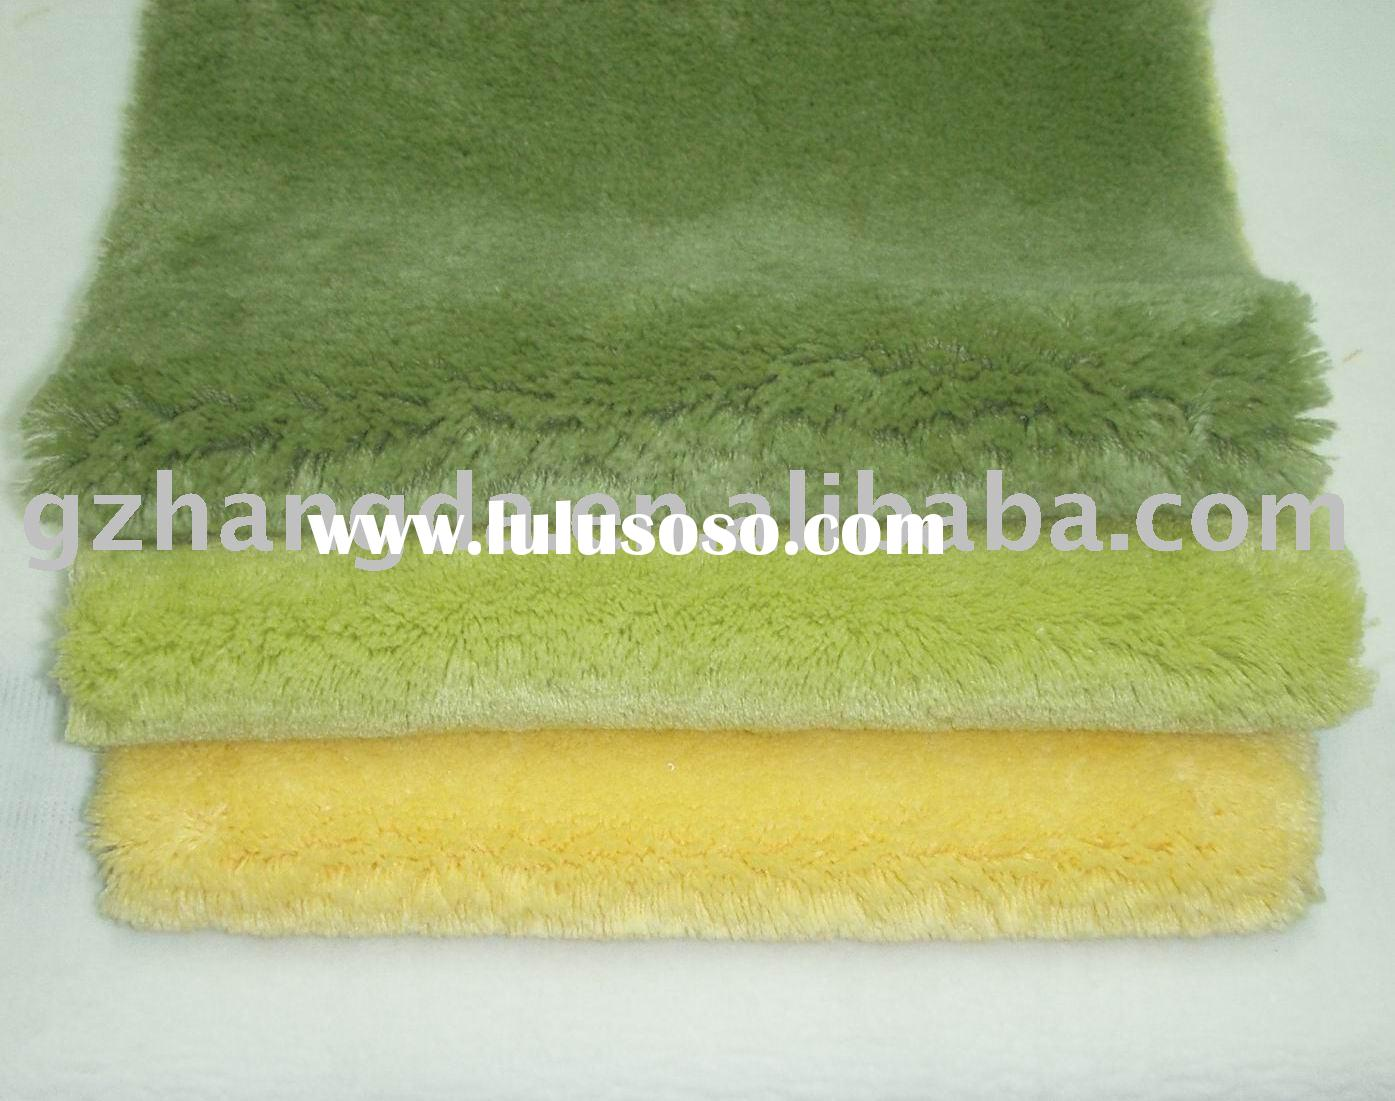 acrylic paint roller fabric HD-9A-28